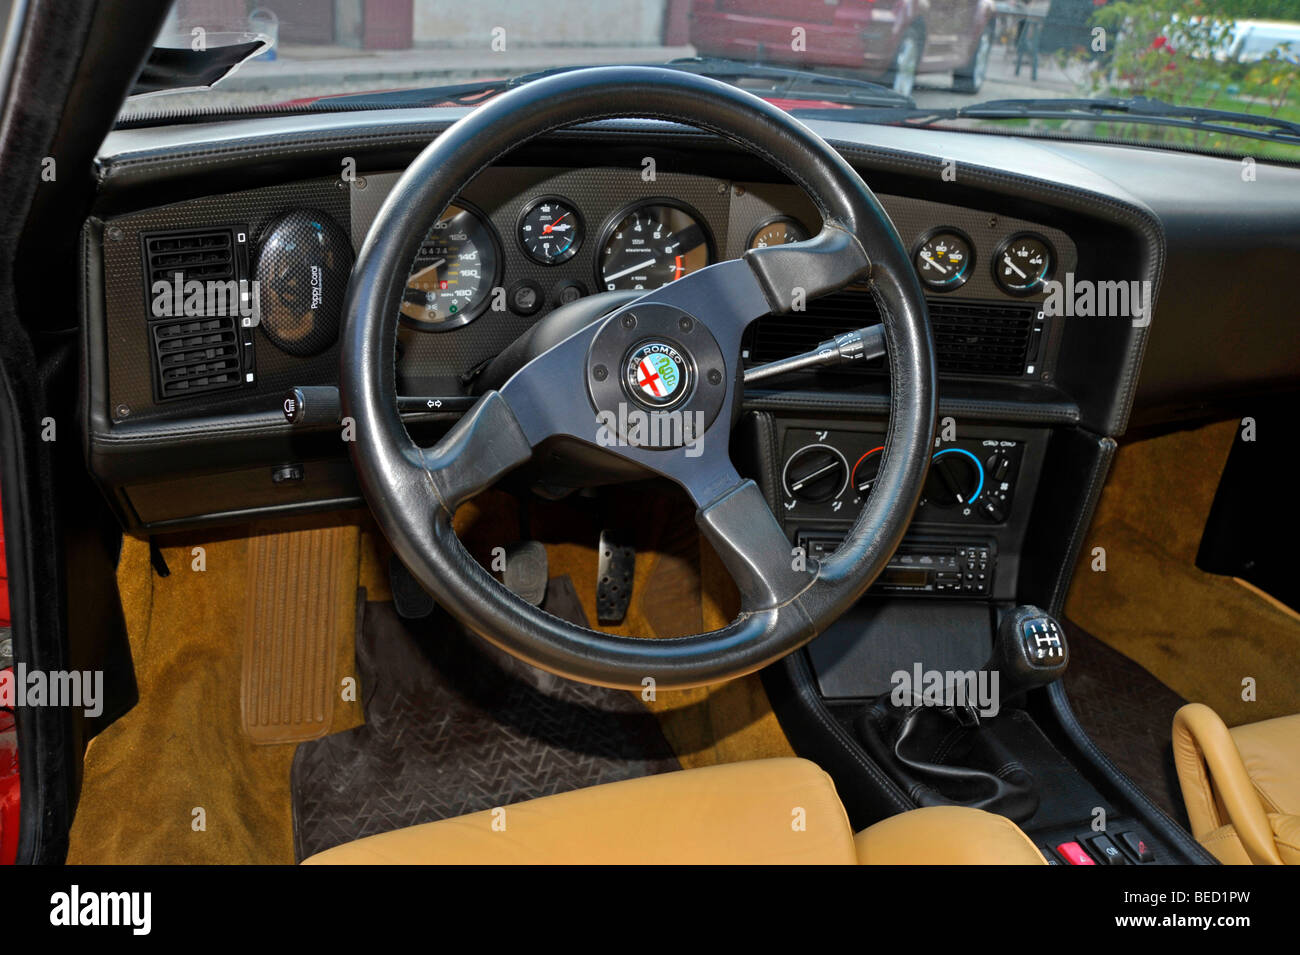 alfa romeo zagato sz classic italian sports car interior stock photo royalty free image. Black Bedroom Furniture Sets. Home Design Ideas